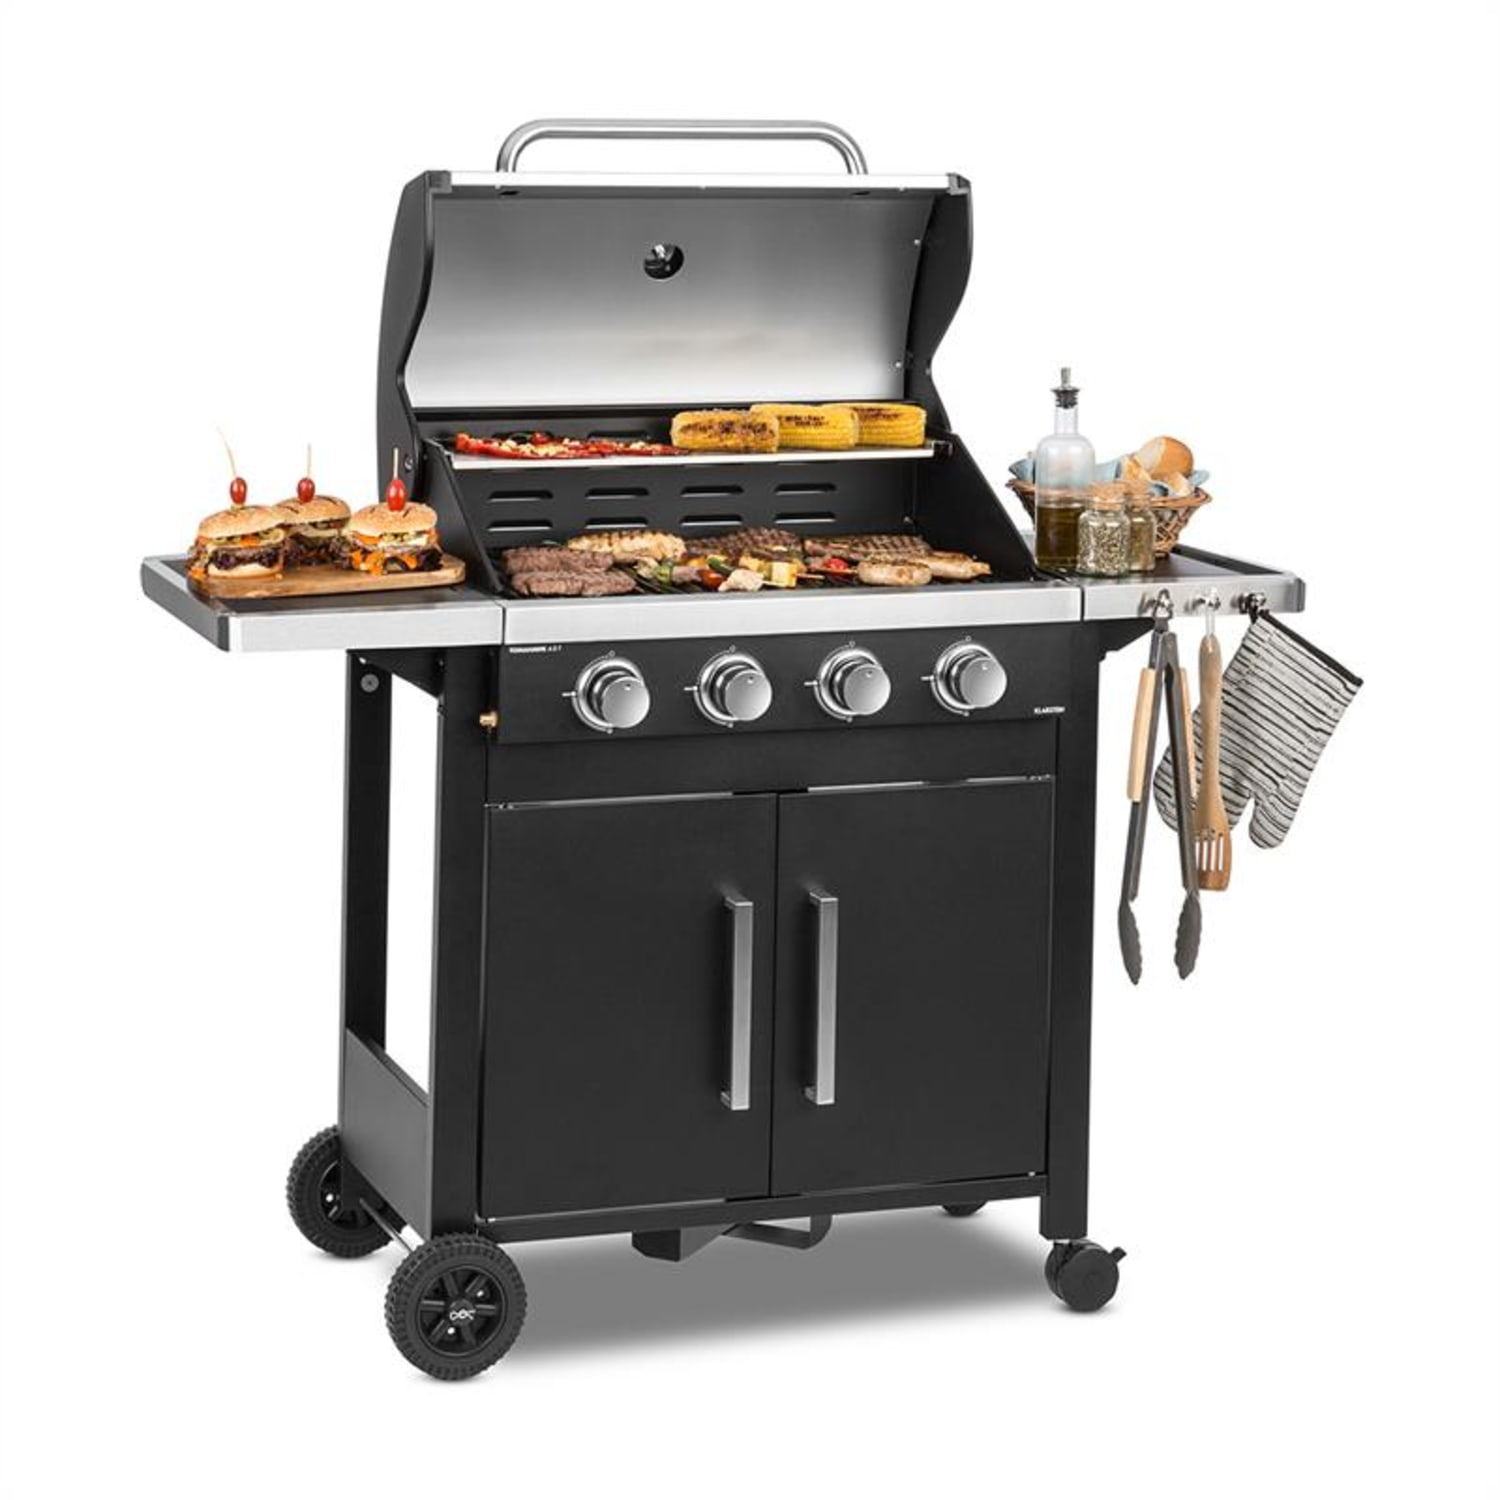 Tomahawk 4.0 T Gas Grill 4 x 3.2 kW Burner 63x39cm Grill Stainless Steel